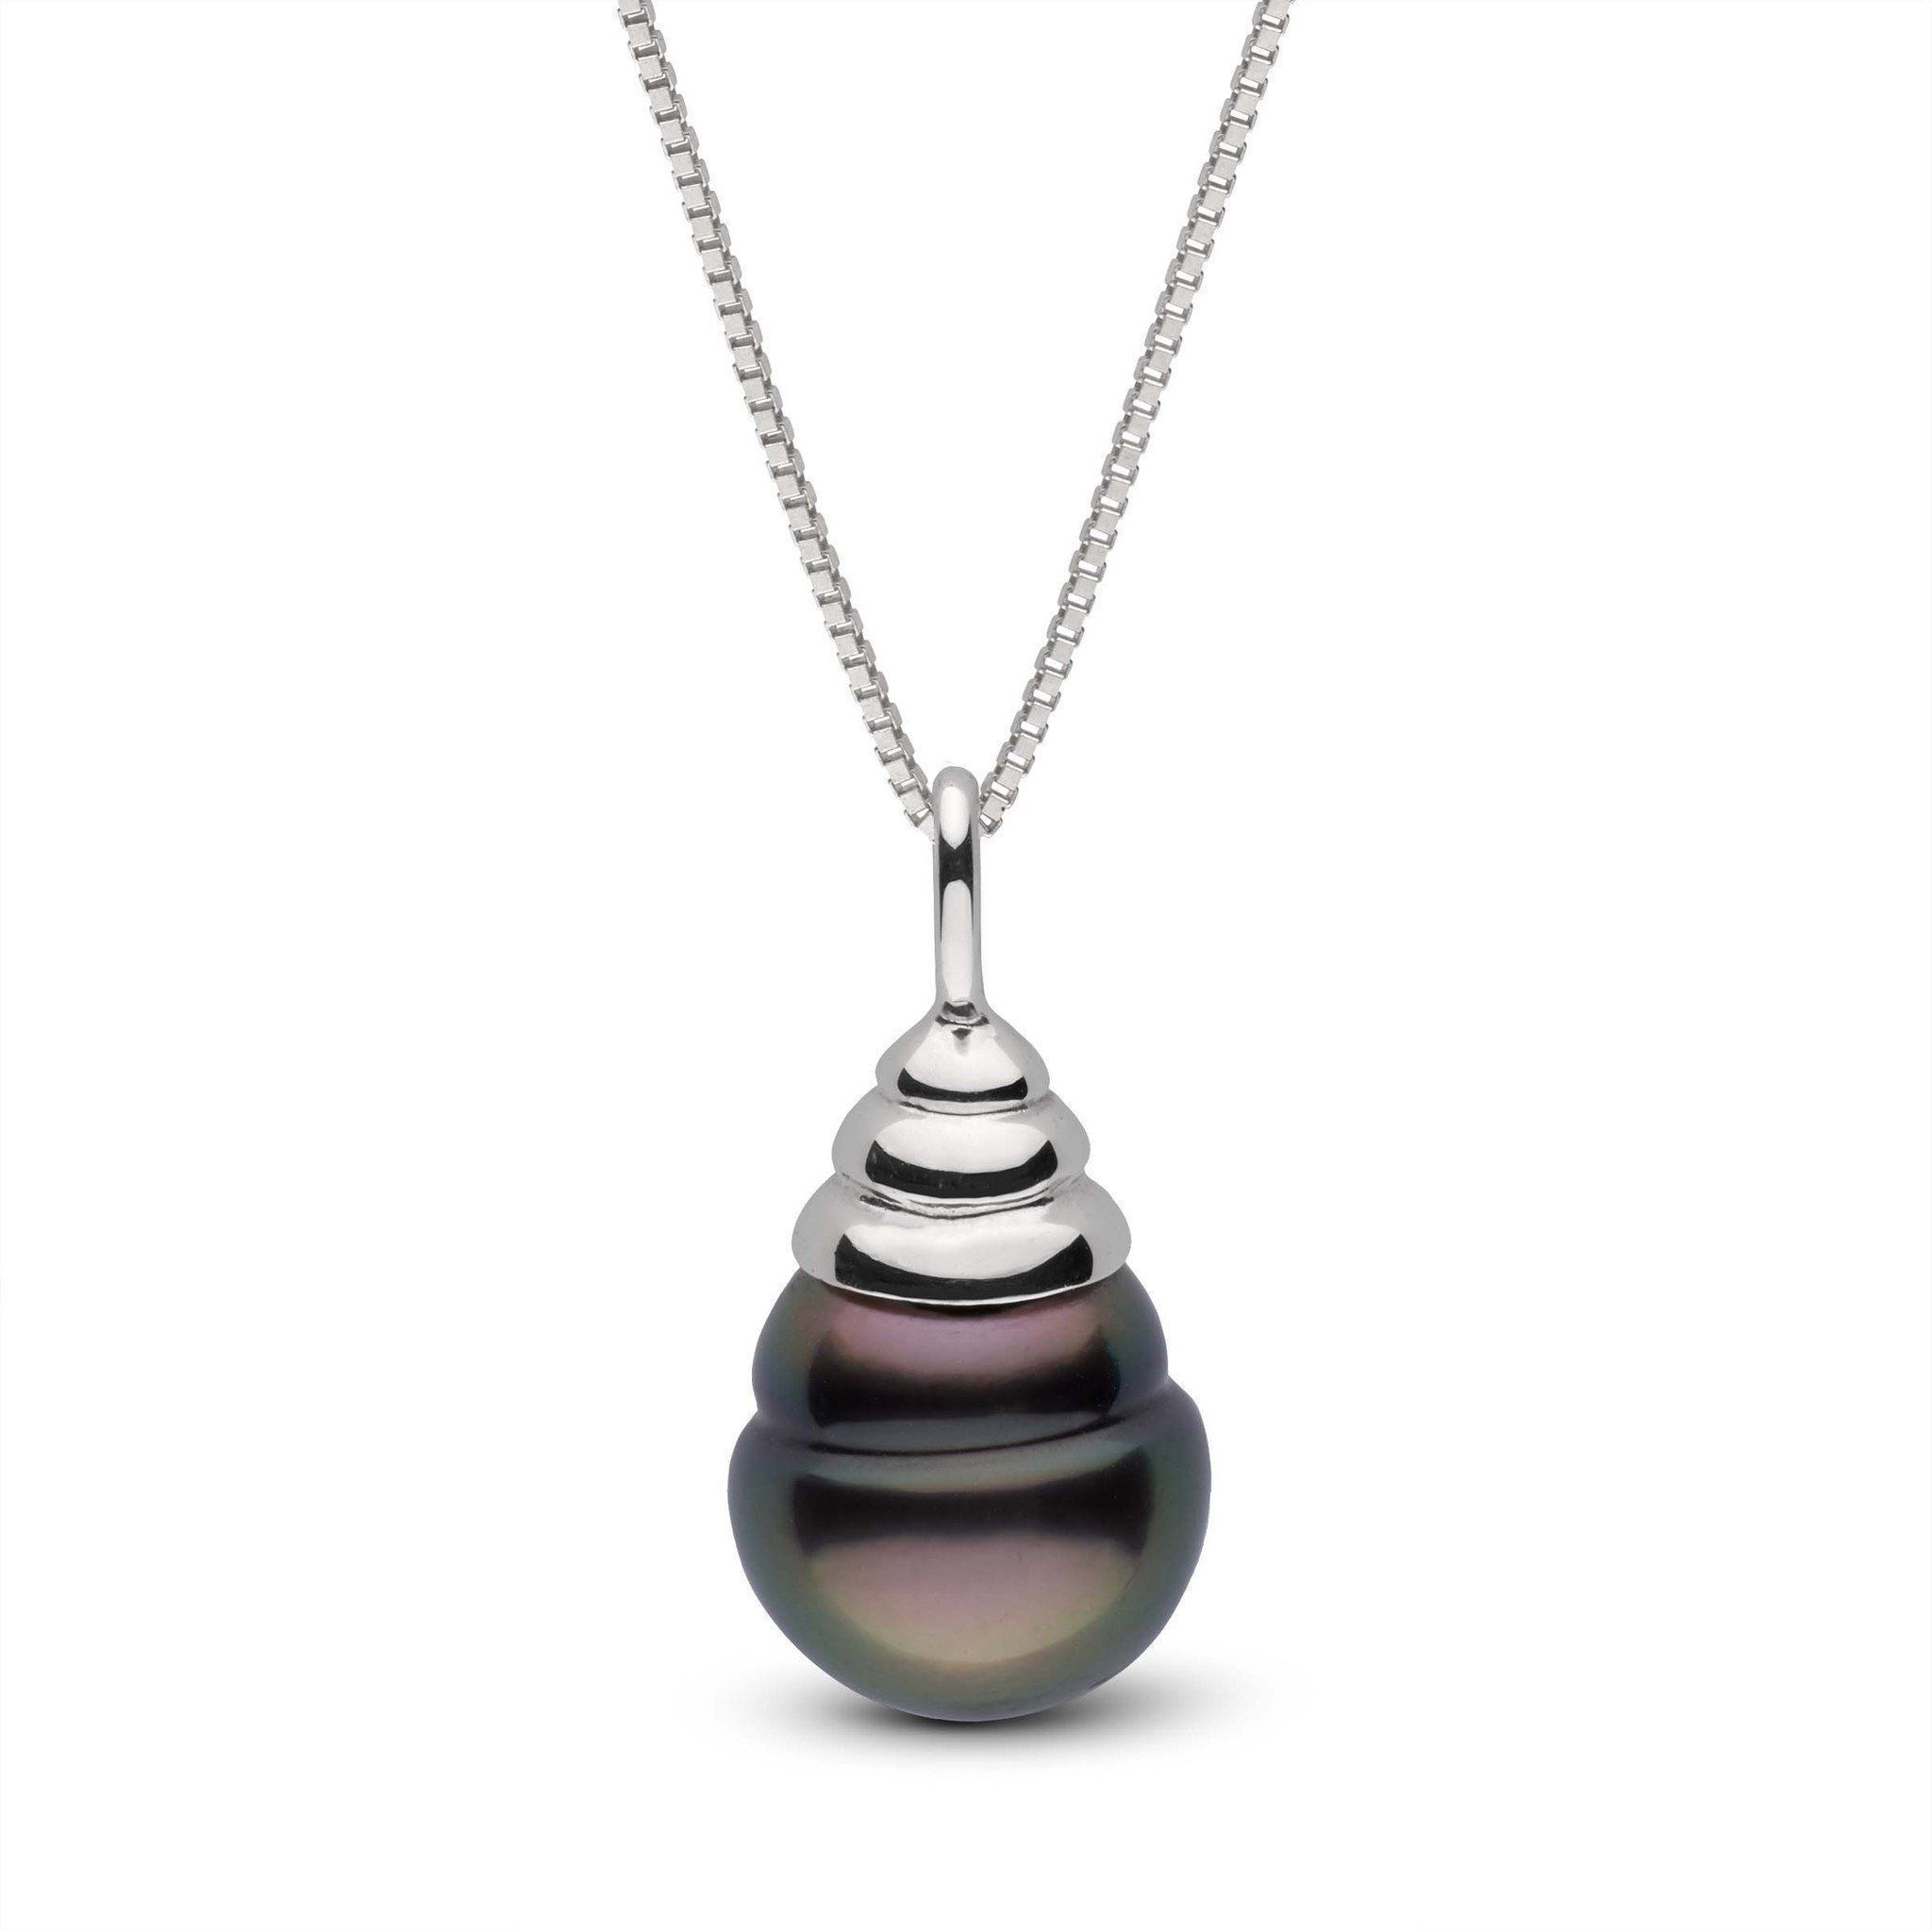 Honey Collection 11.0-12.0 mm Tahitian Baroque Pearl Pendant